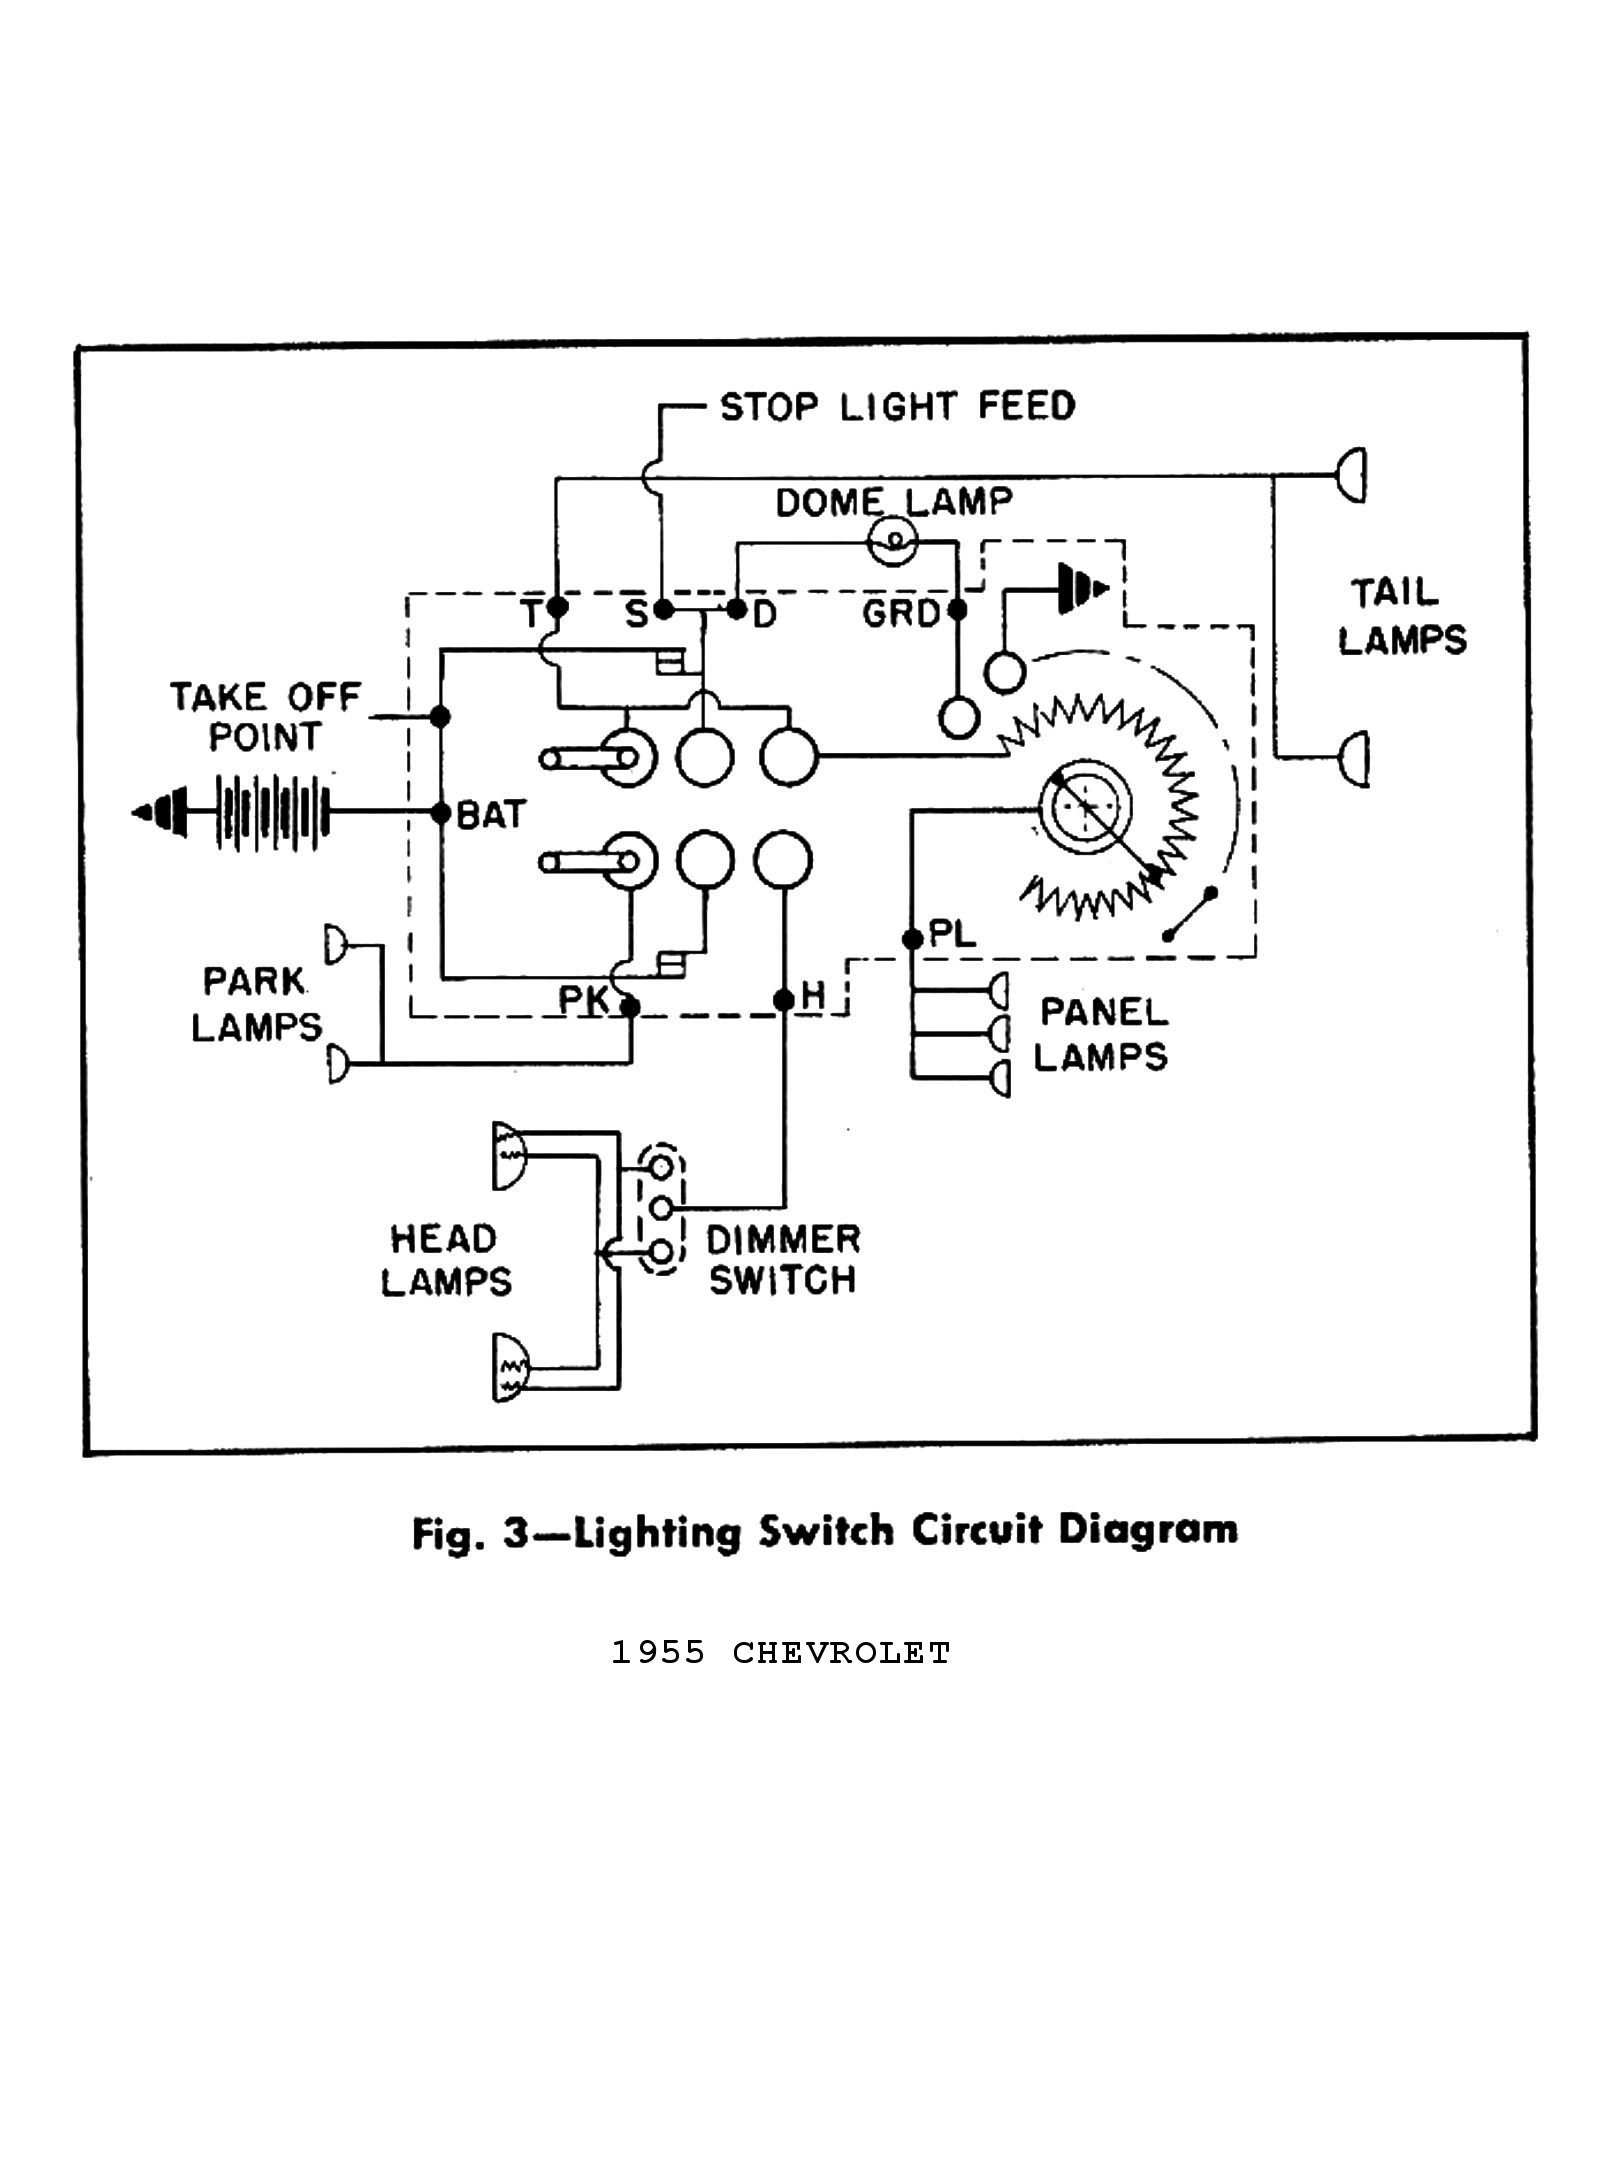 Wiring Diagram For Gm Light Switch | Wiring Diagrams on